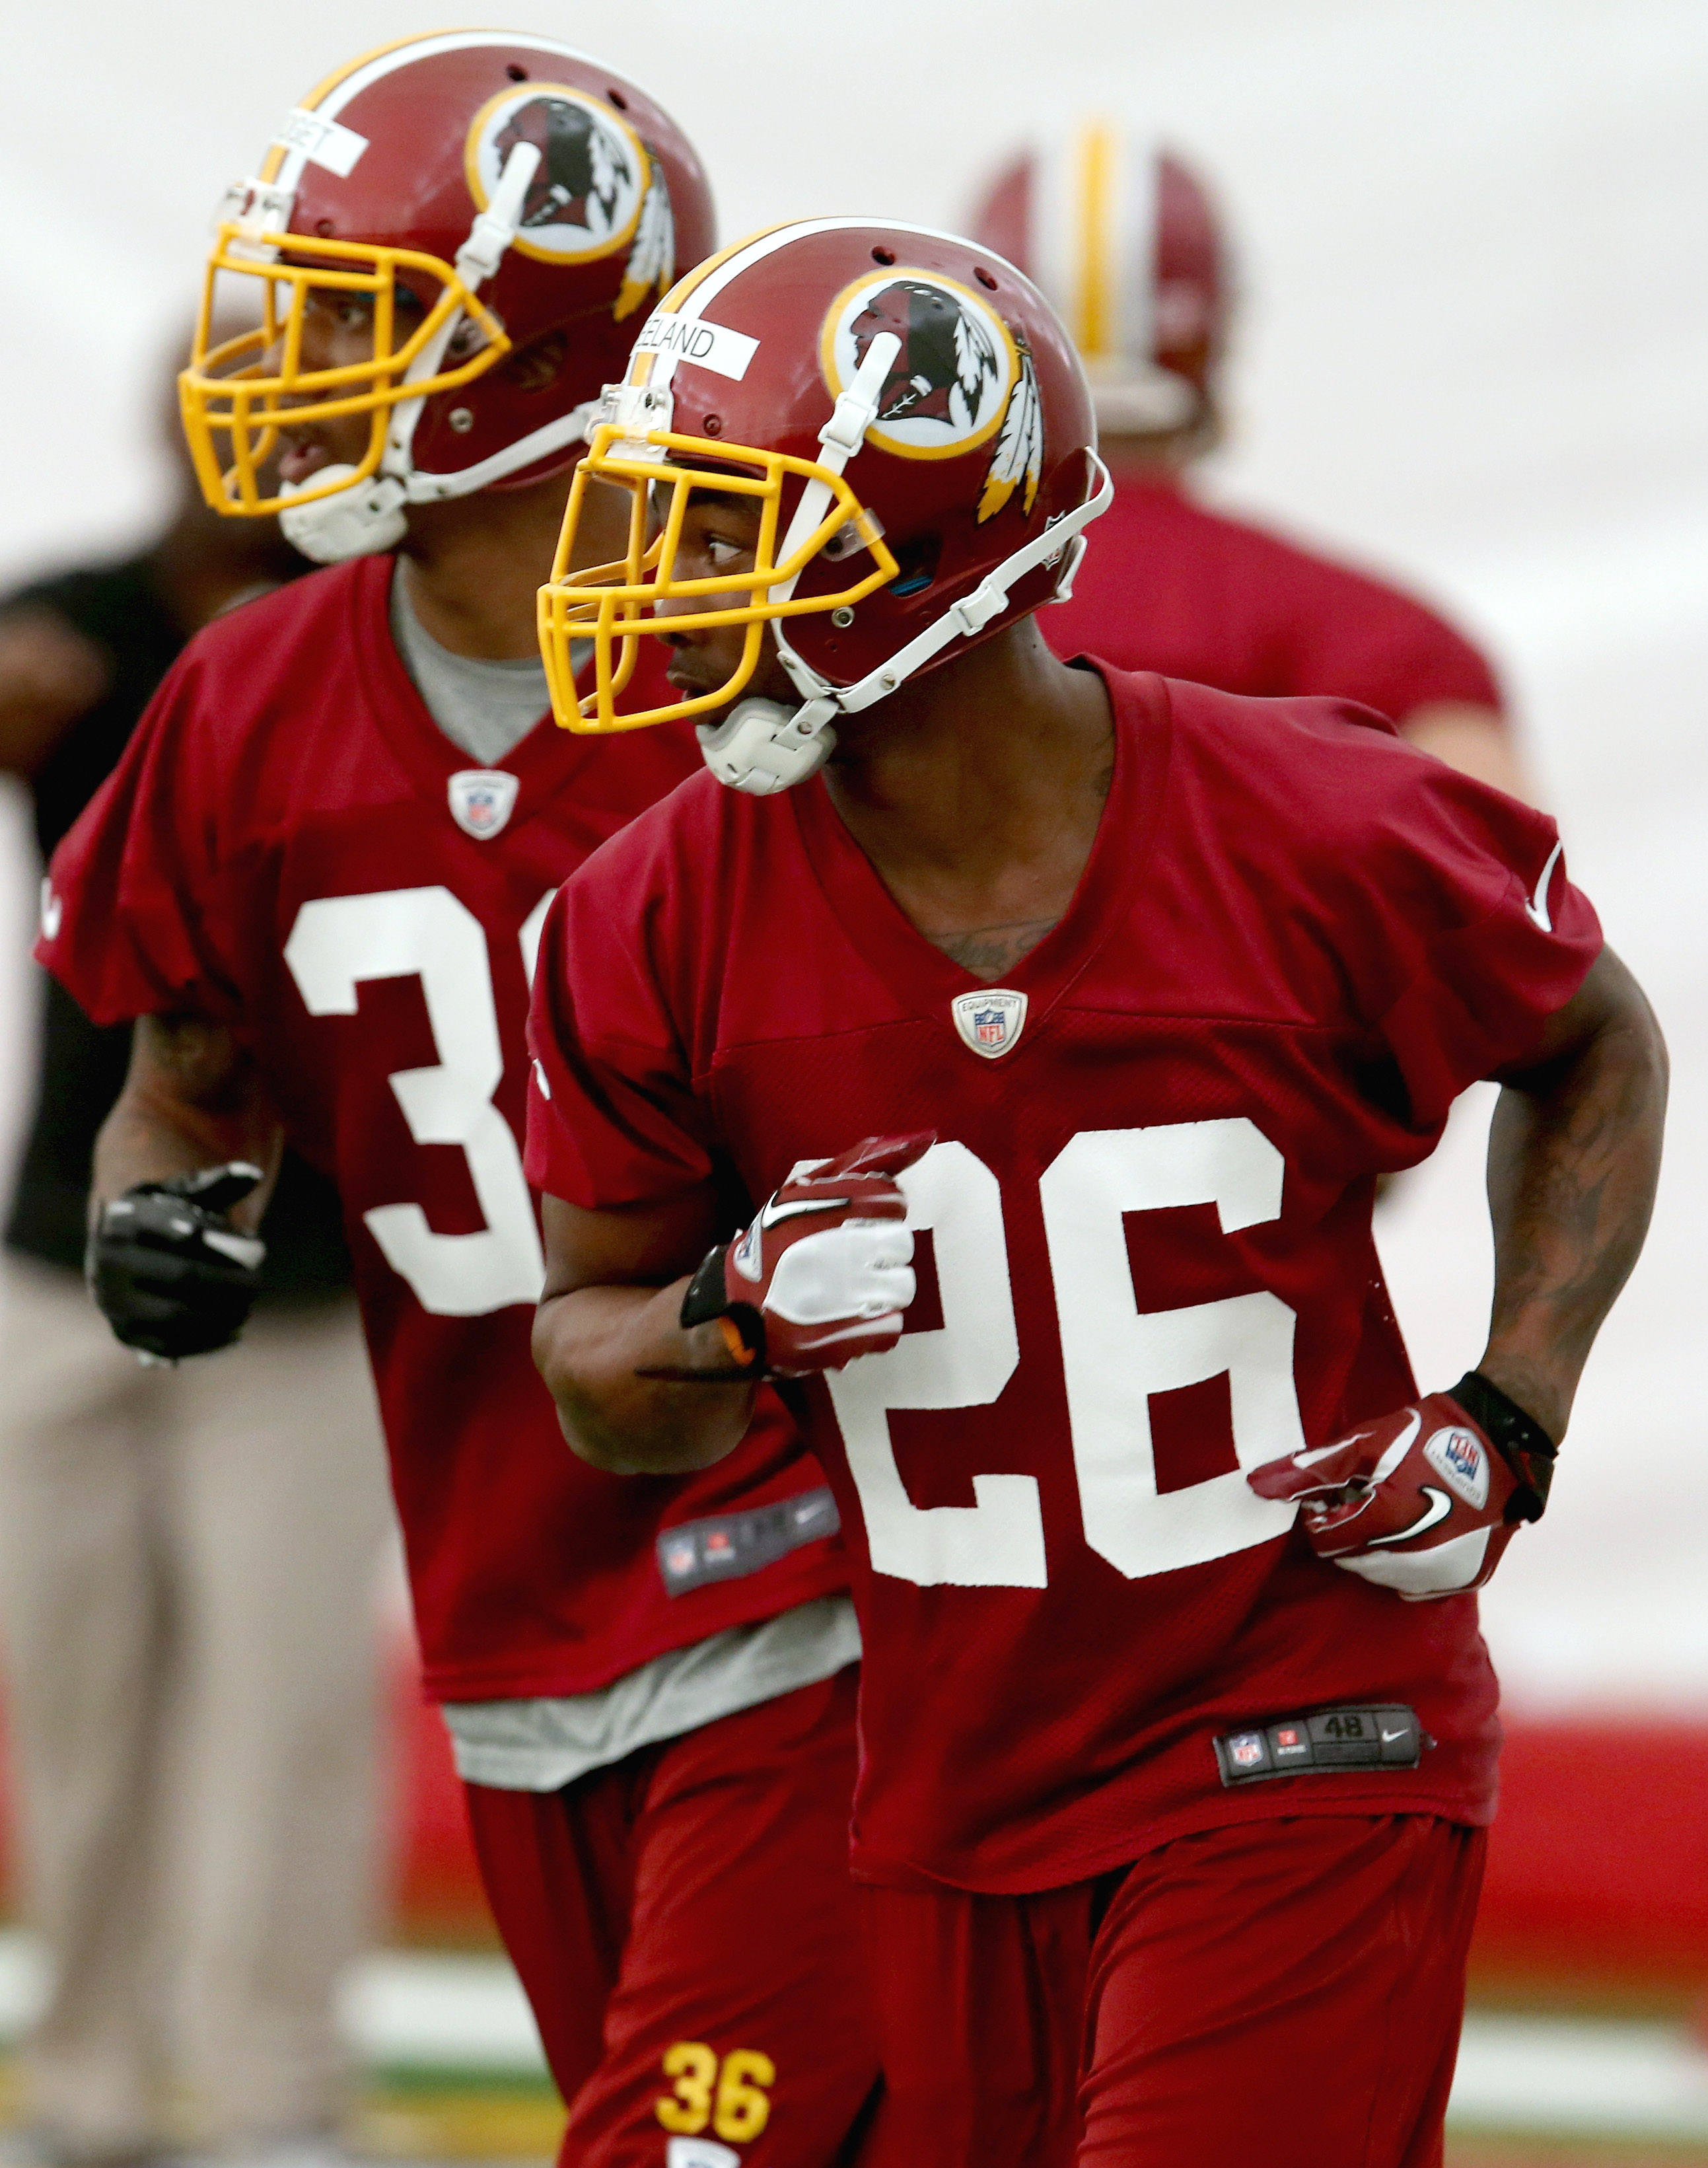 Rookie Redskin Bashaud Breeland participates in the Redskins rookie mini camp at Redskins Park in Ashburn, Virginia on May 17, 2014.